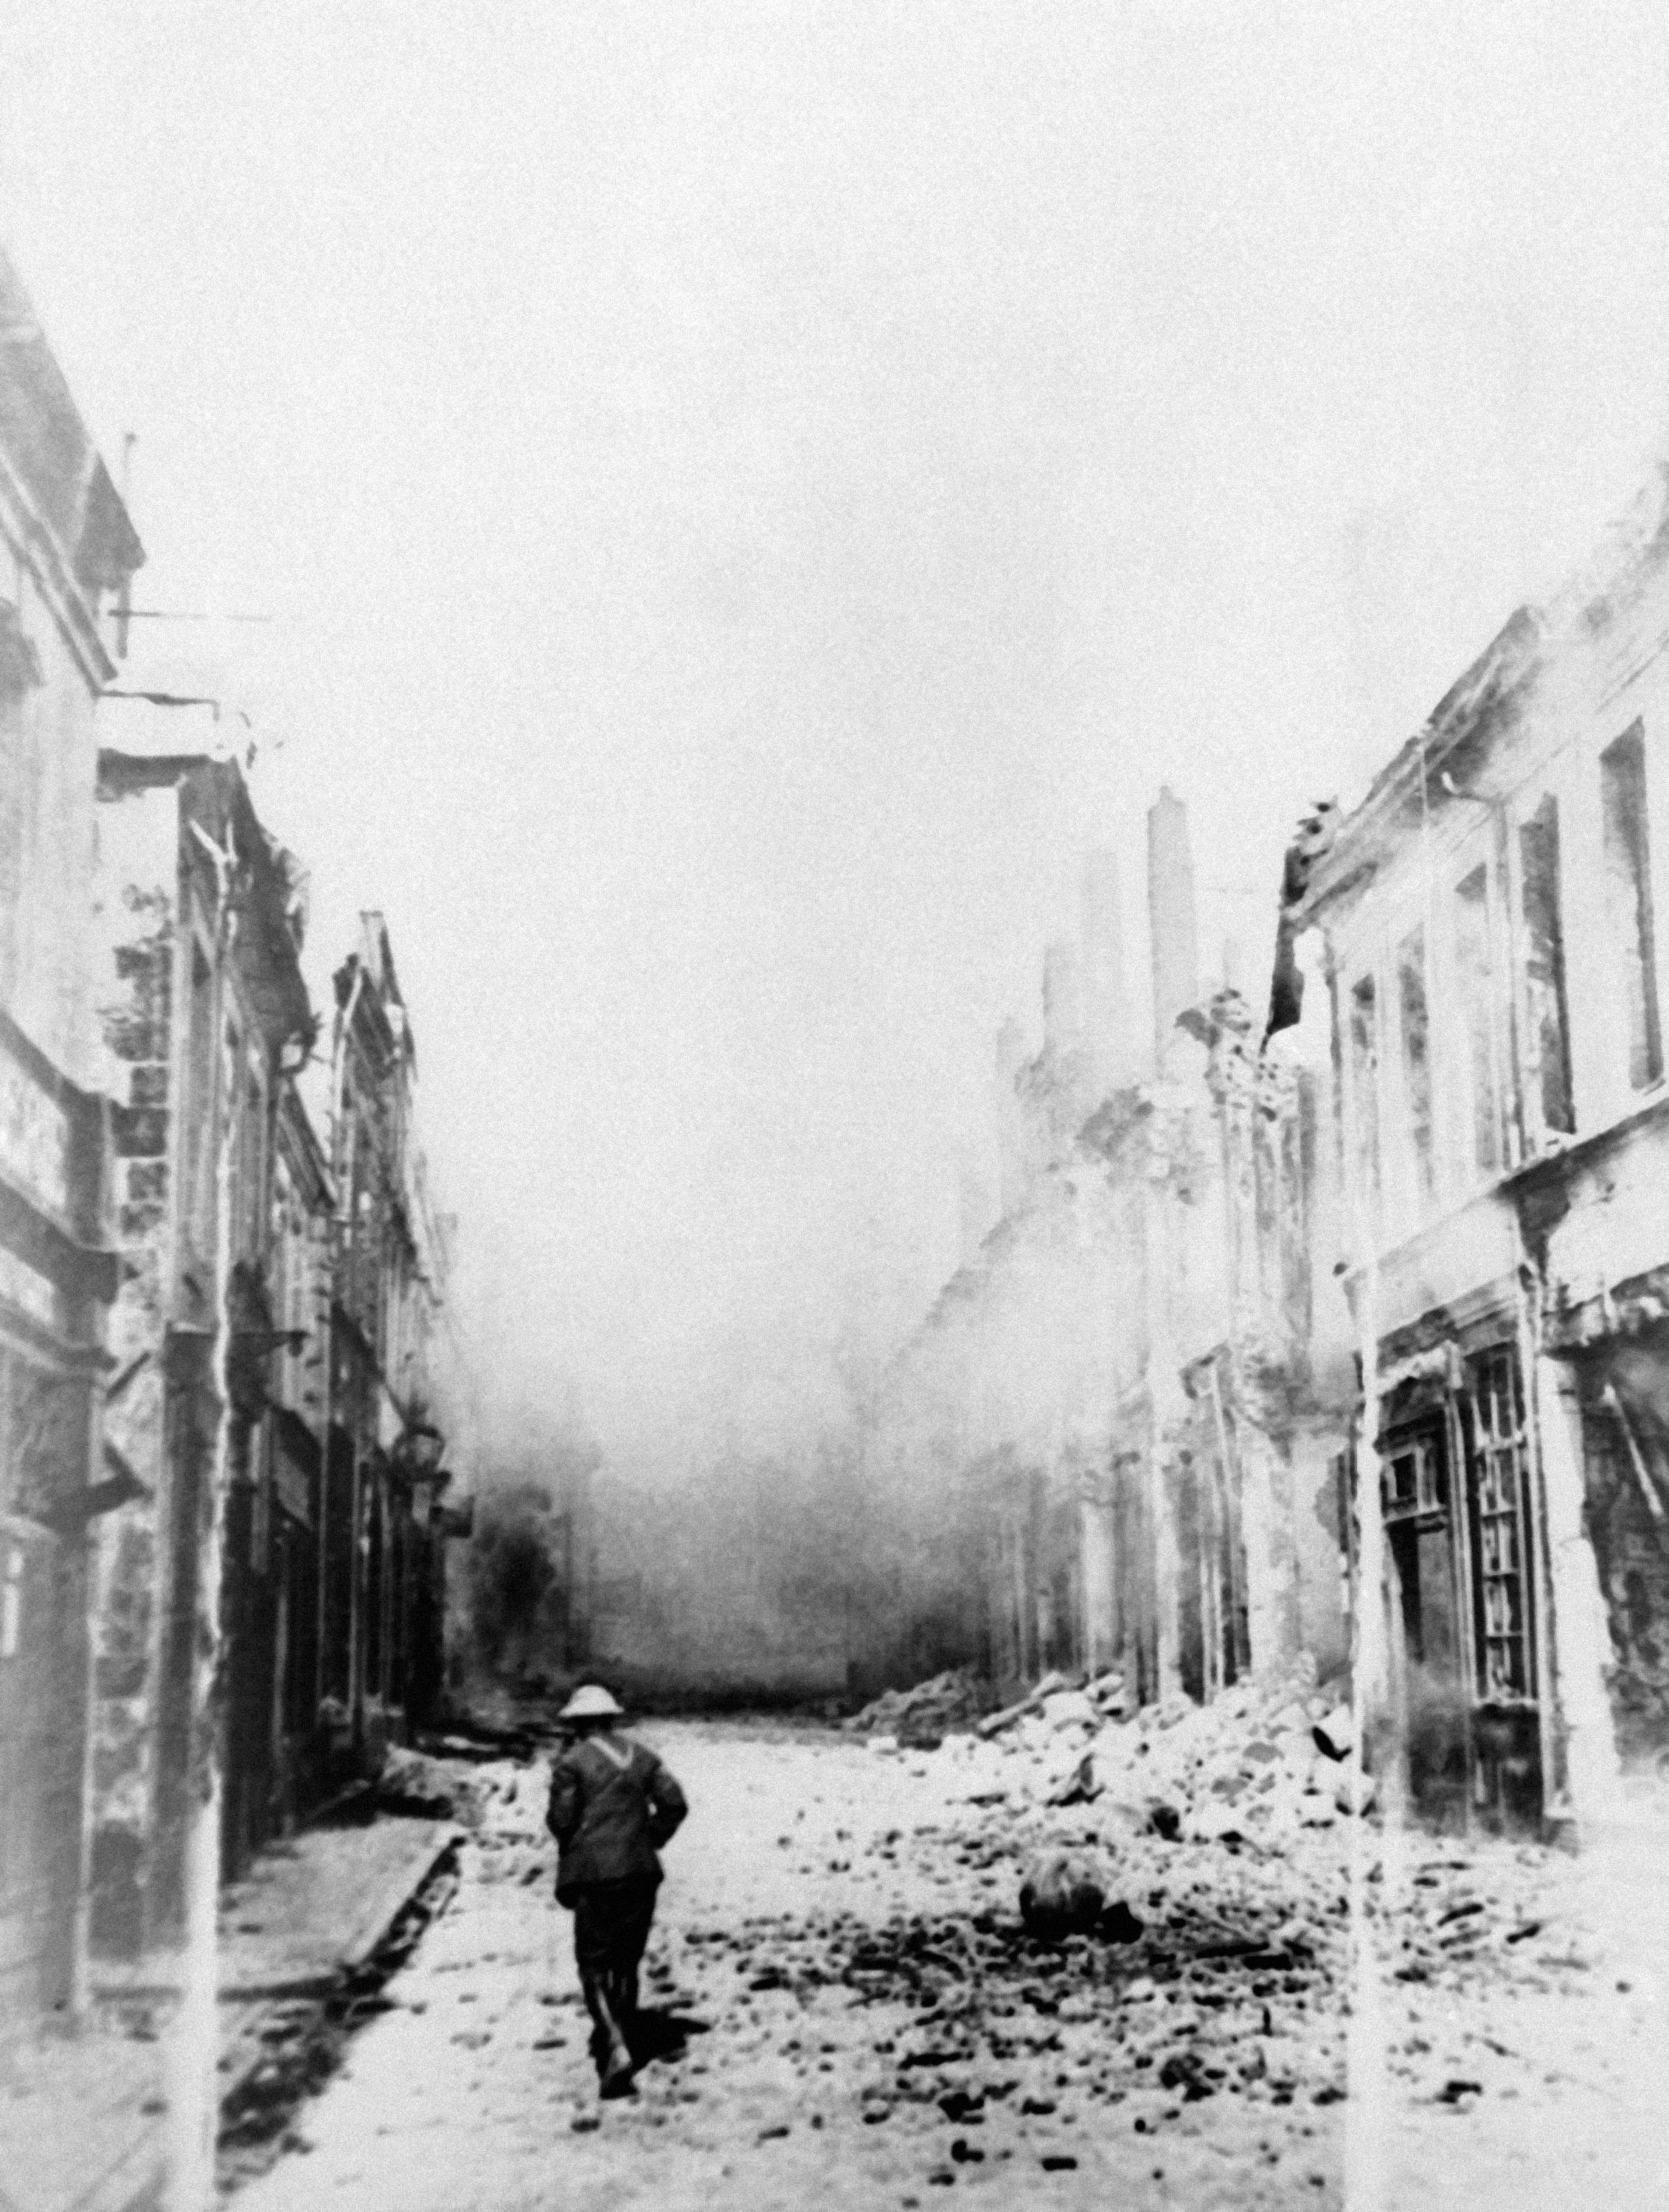 74 OF 100: In this December 1917 file photo, smoke billows out of buildings in Cambrai, France, after being bombarded by German forces during the World War I Battle of Cambrai.